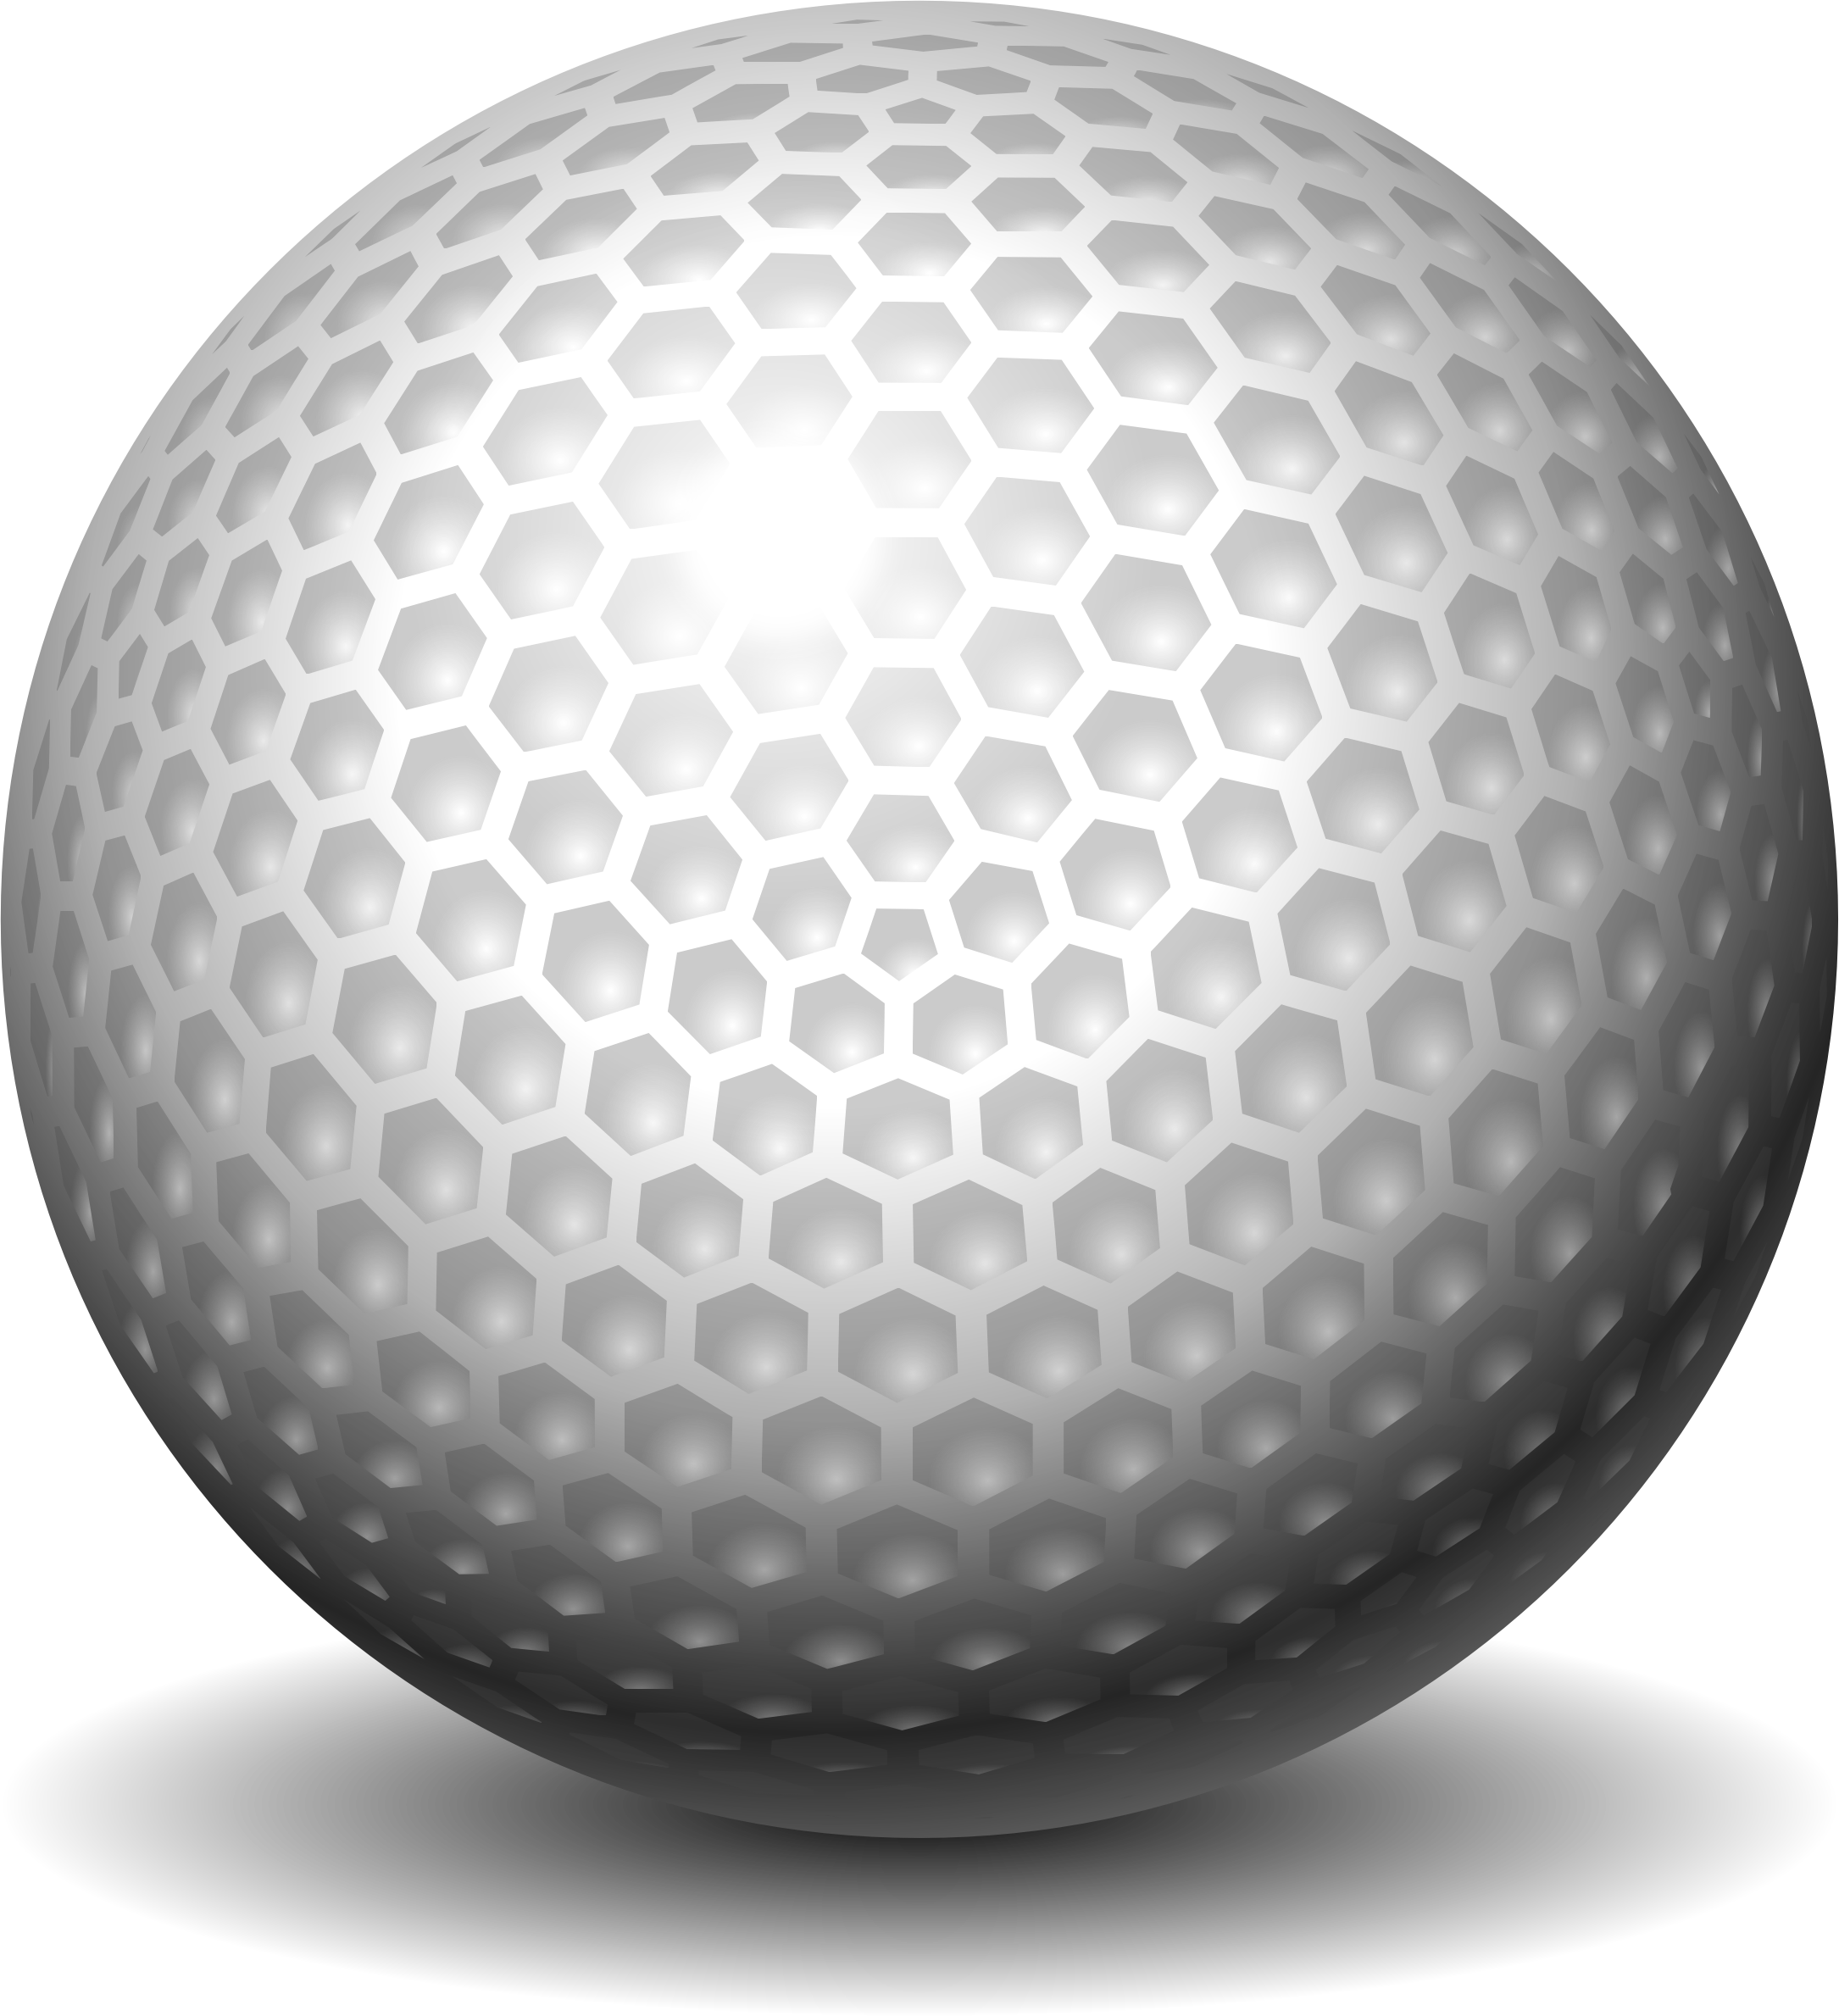 Golf ball clipart png.